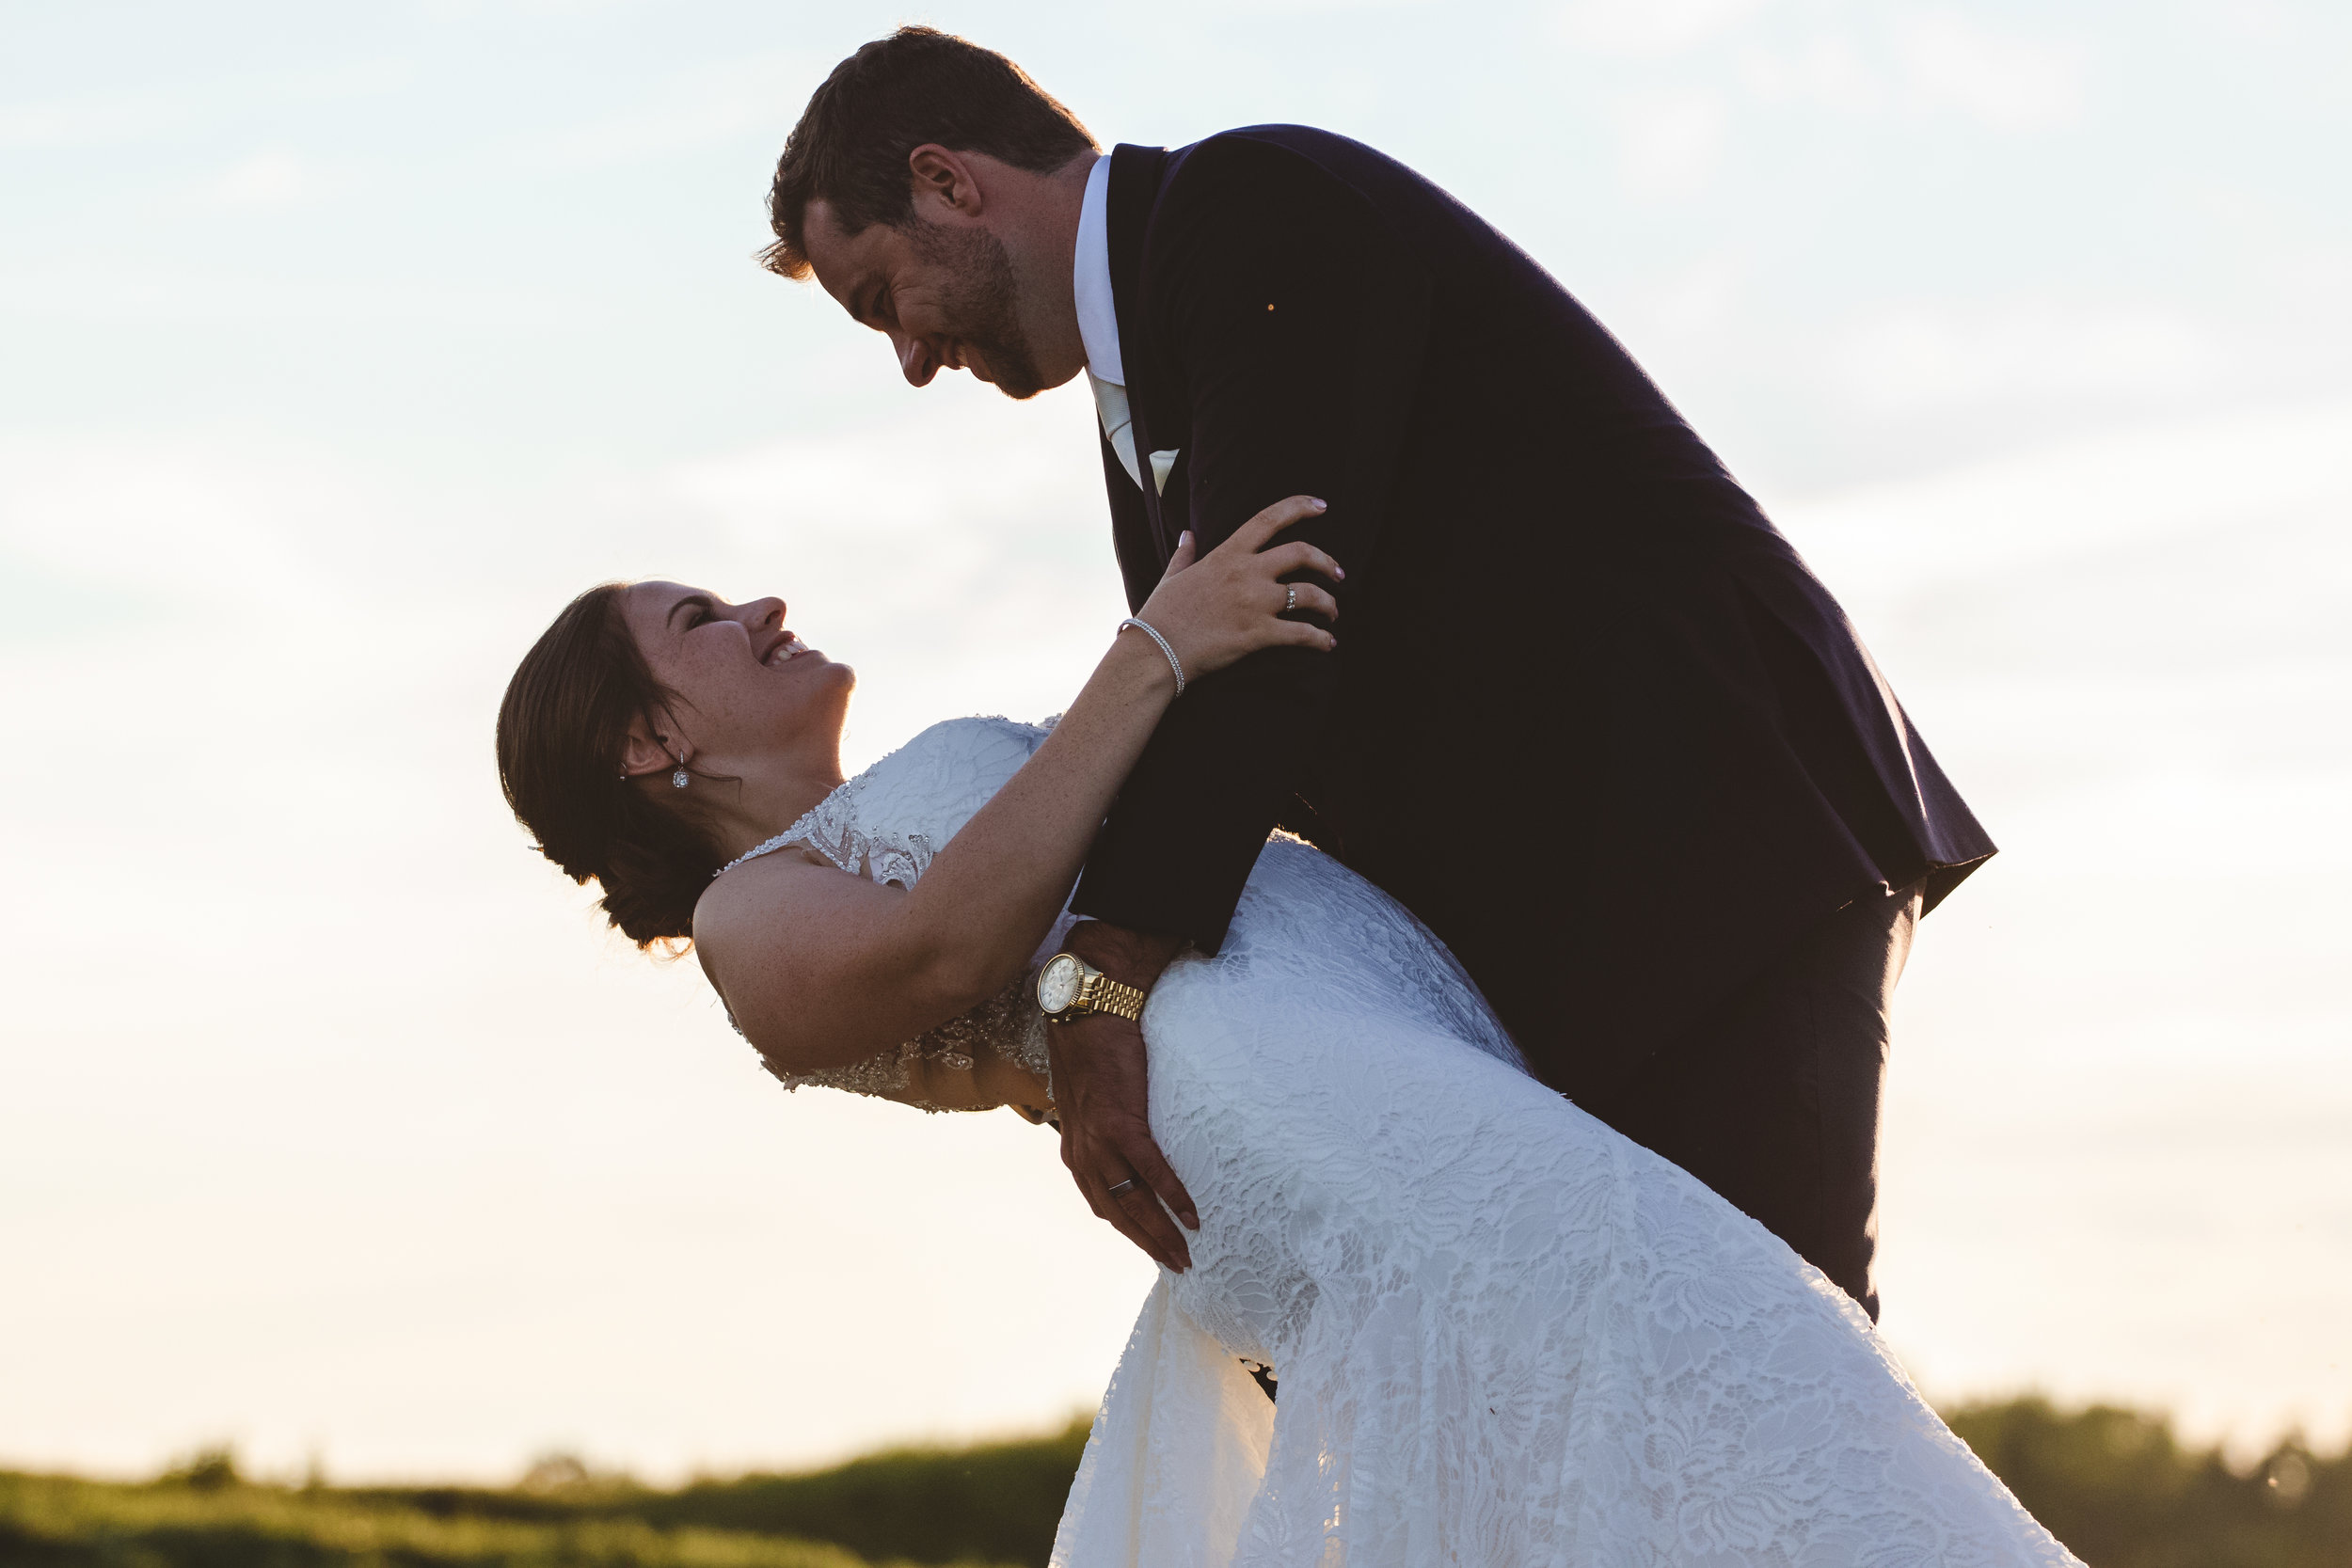 Eric + Kristen Wedding - Here is part of a wedding video shot for a lovely couple in summer 2018.